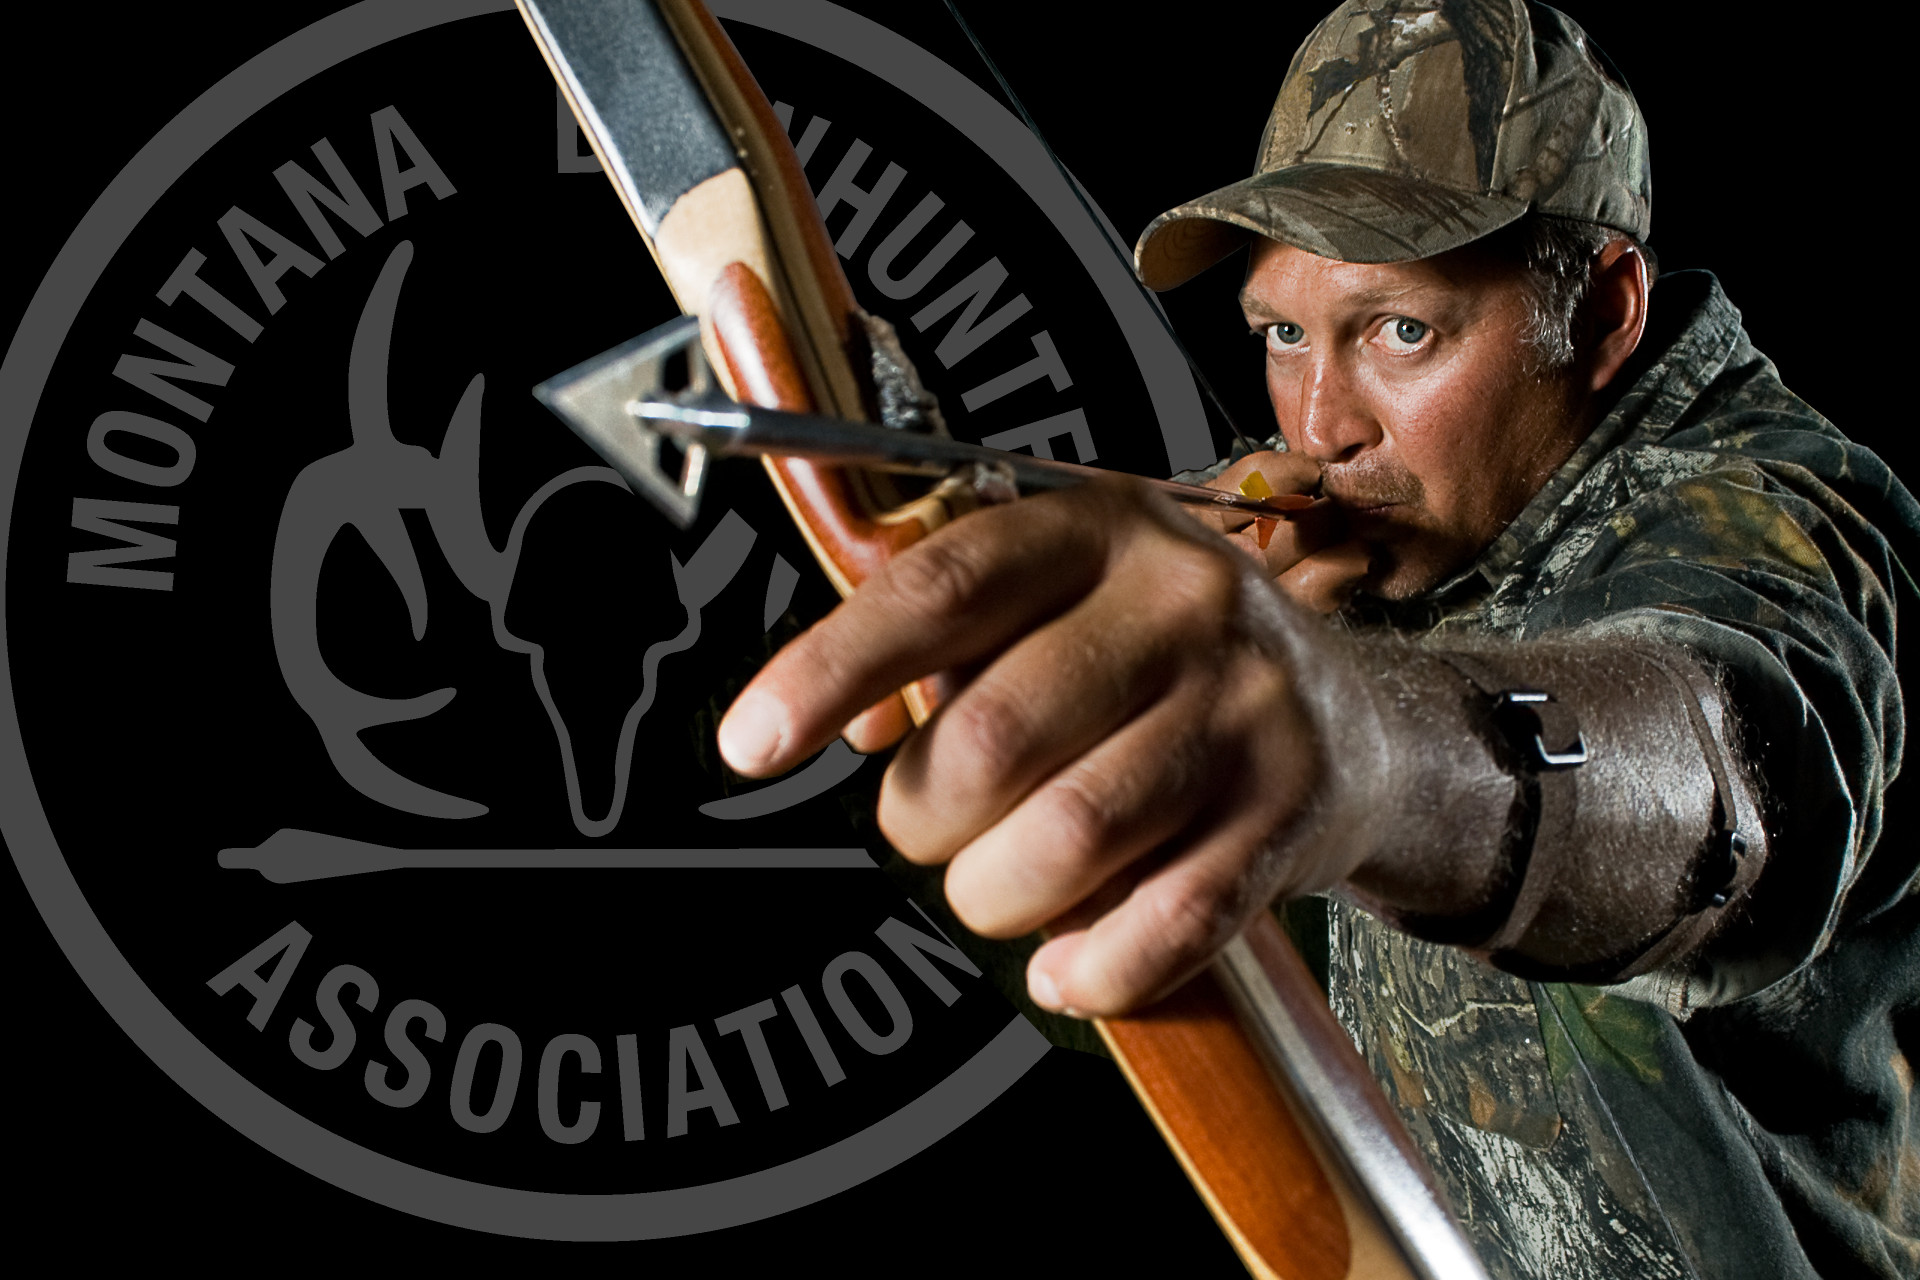 Join the Montana Bowhunters Association